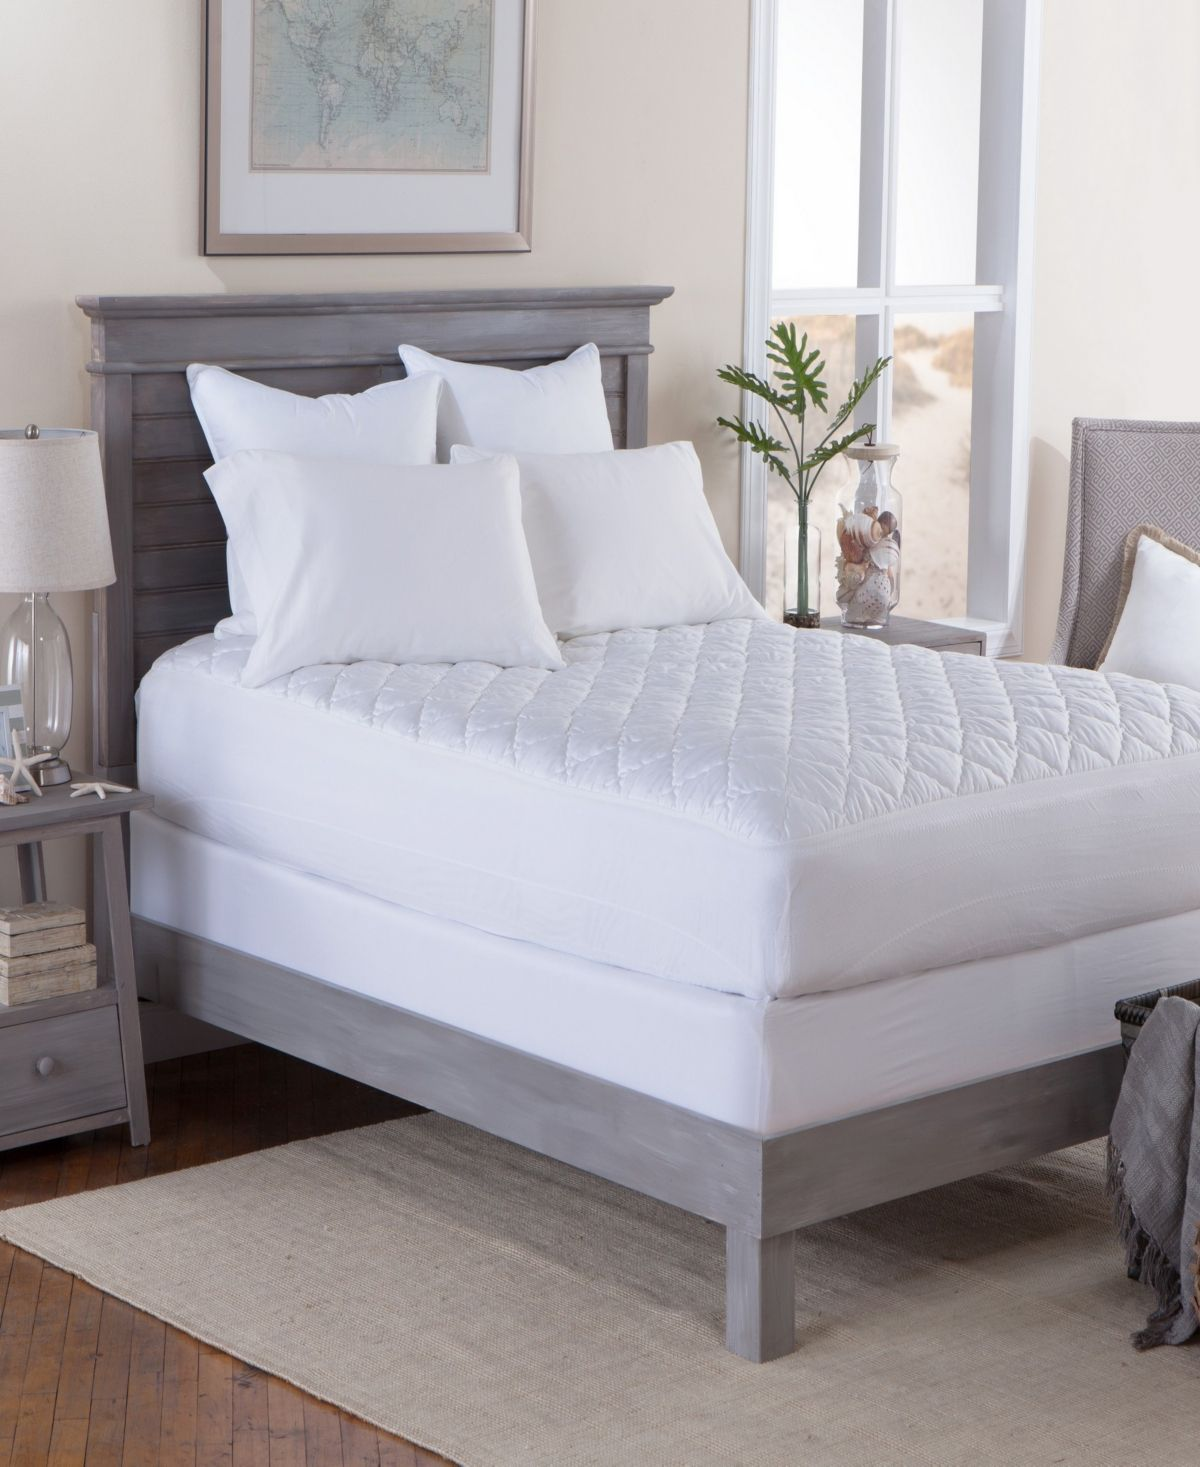 Tommy Bahama Home Tommy Bahama Waterproof Twin Xl Mattress Pad Reviews Mattress Pads Toppers Bed Bath Macy S Mattress Pad Tommy Bahama Bedding Mattress Furniture